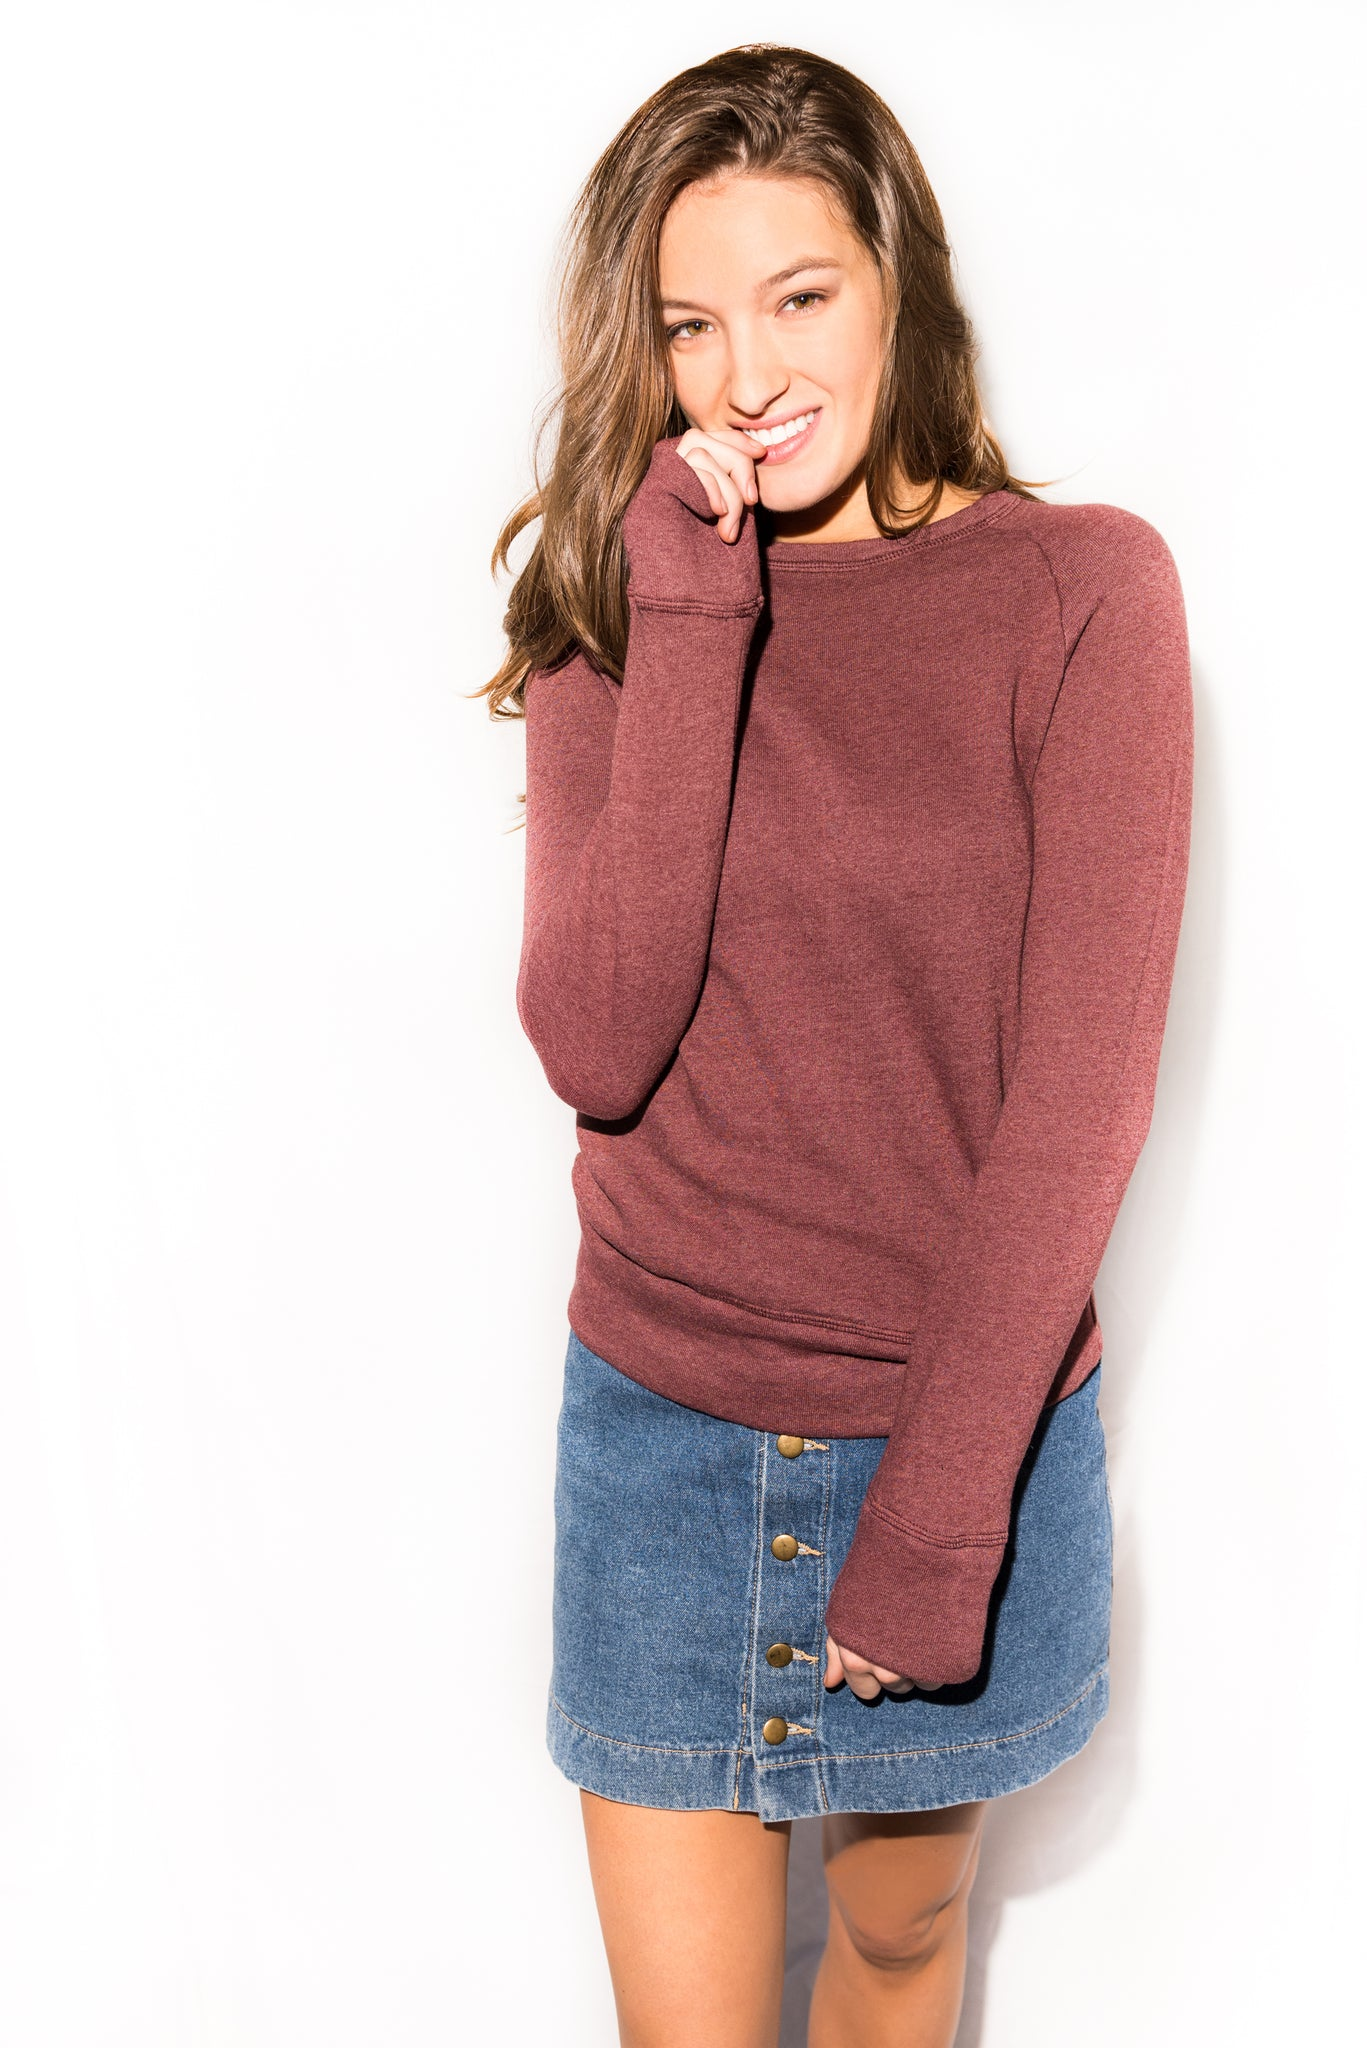 WOMEN'S FRENCH TERRY RELAXED FIT PULLOVER SWEATSHIRT - MAROON